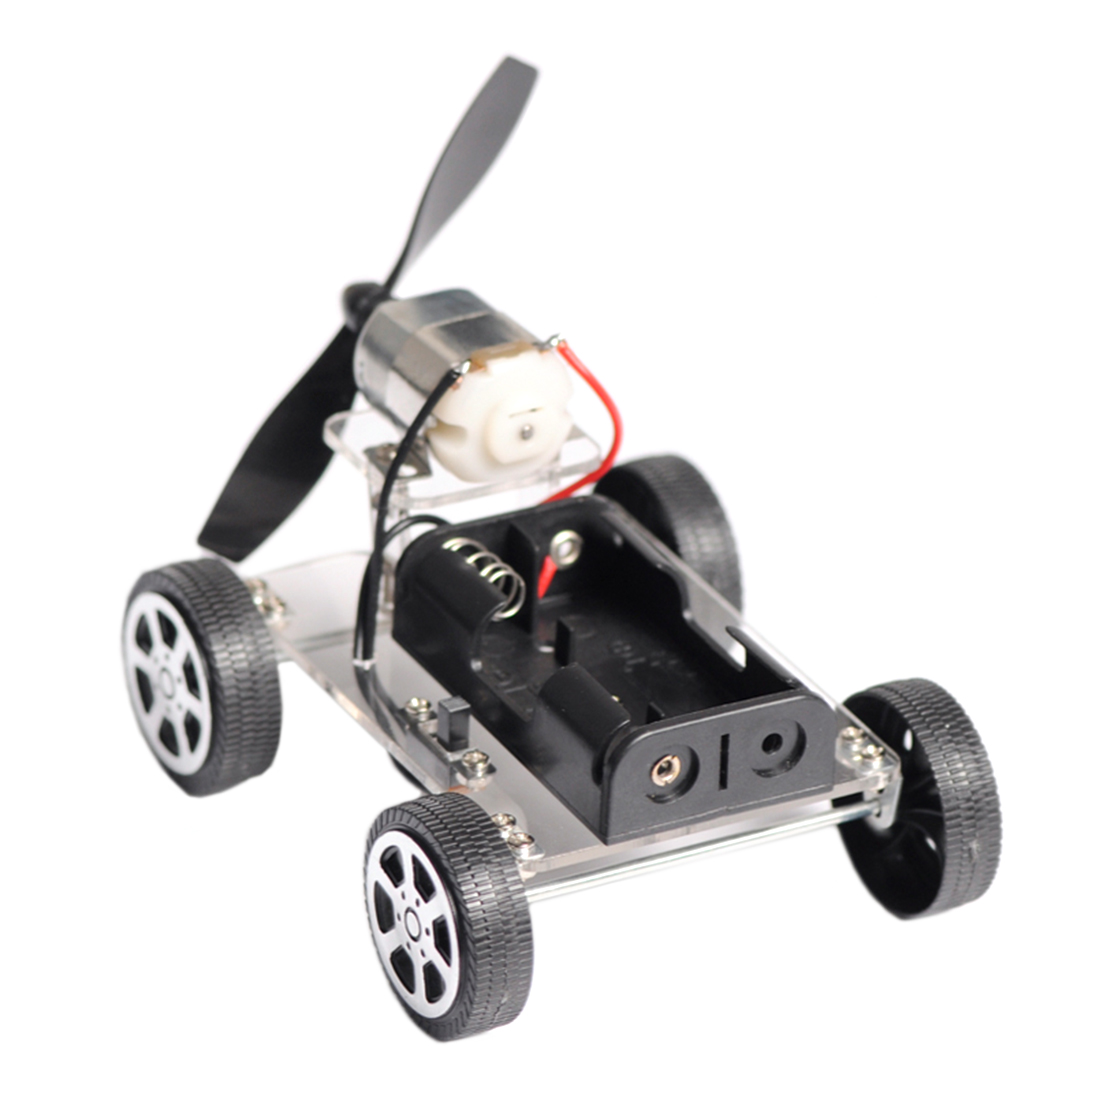 DIY Wind Trolley Wind Driving Force Car Model Science Experiment Toy Lab and Scientific Supplies for Student Class Learning Kits